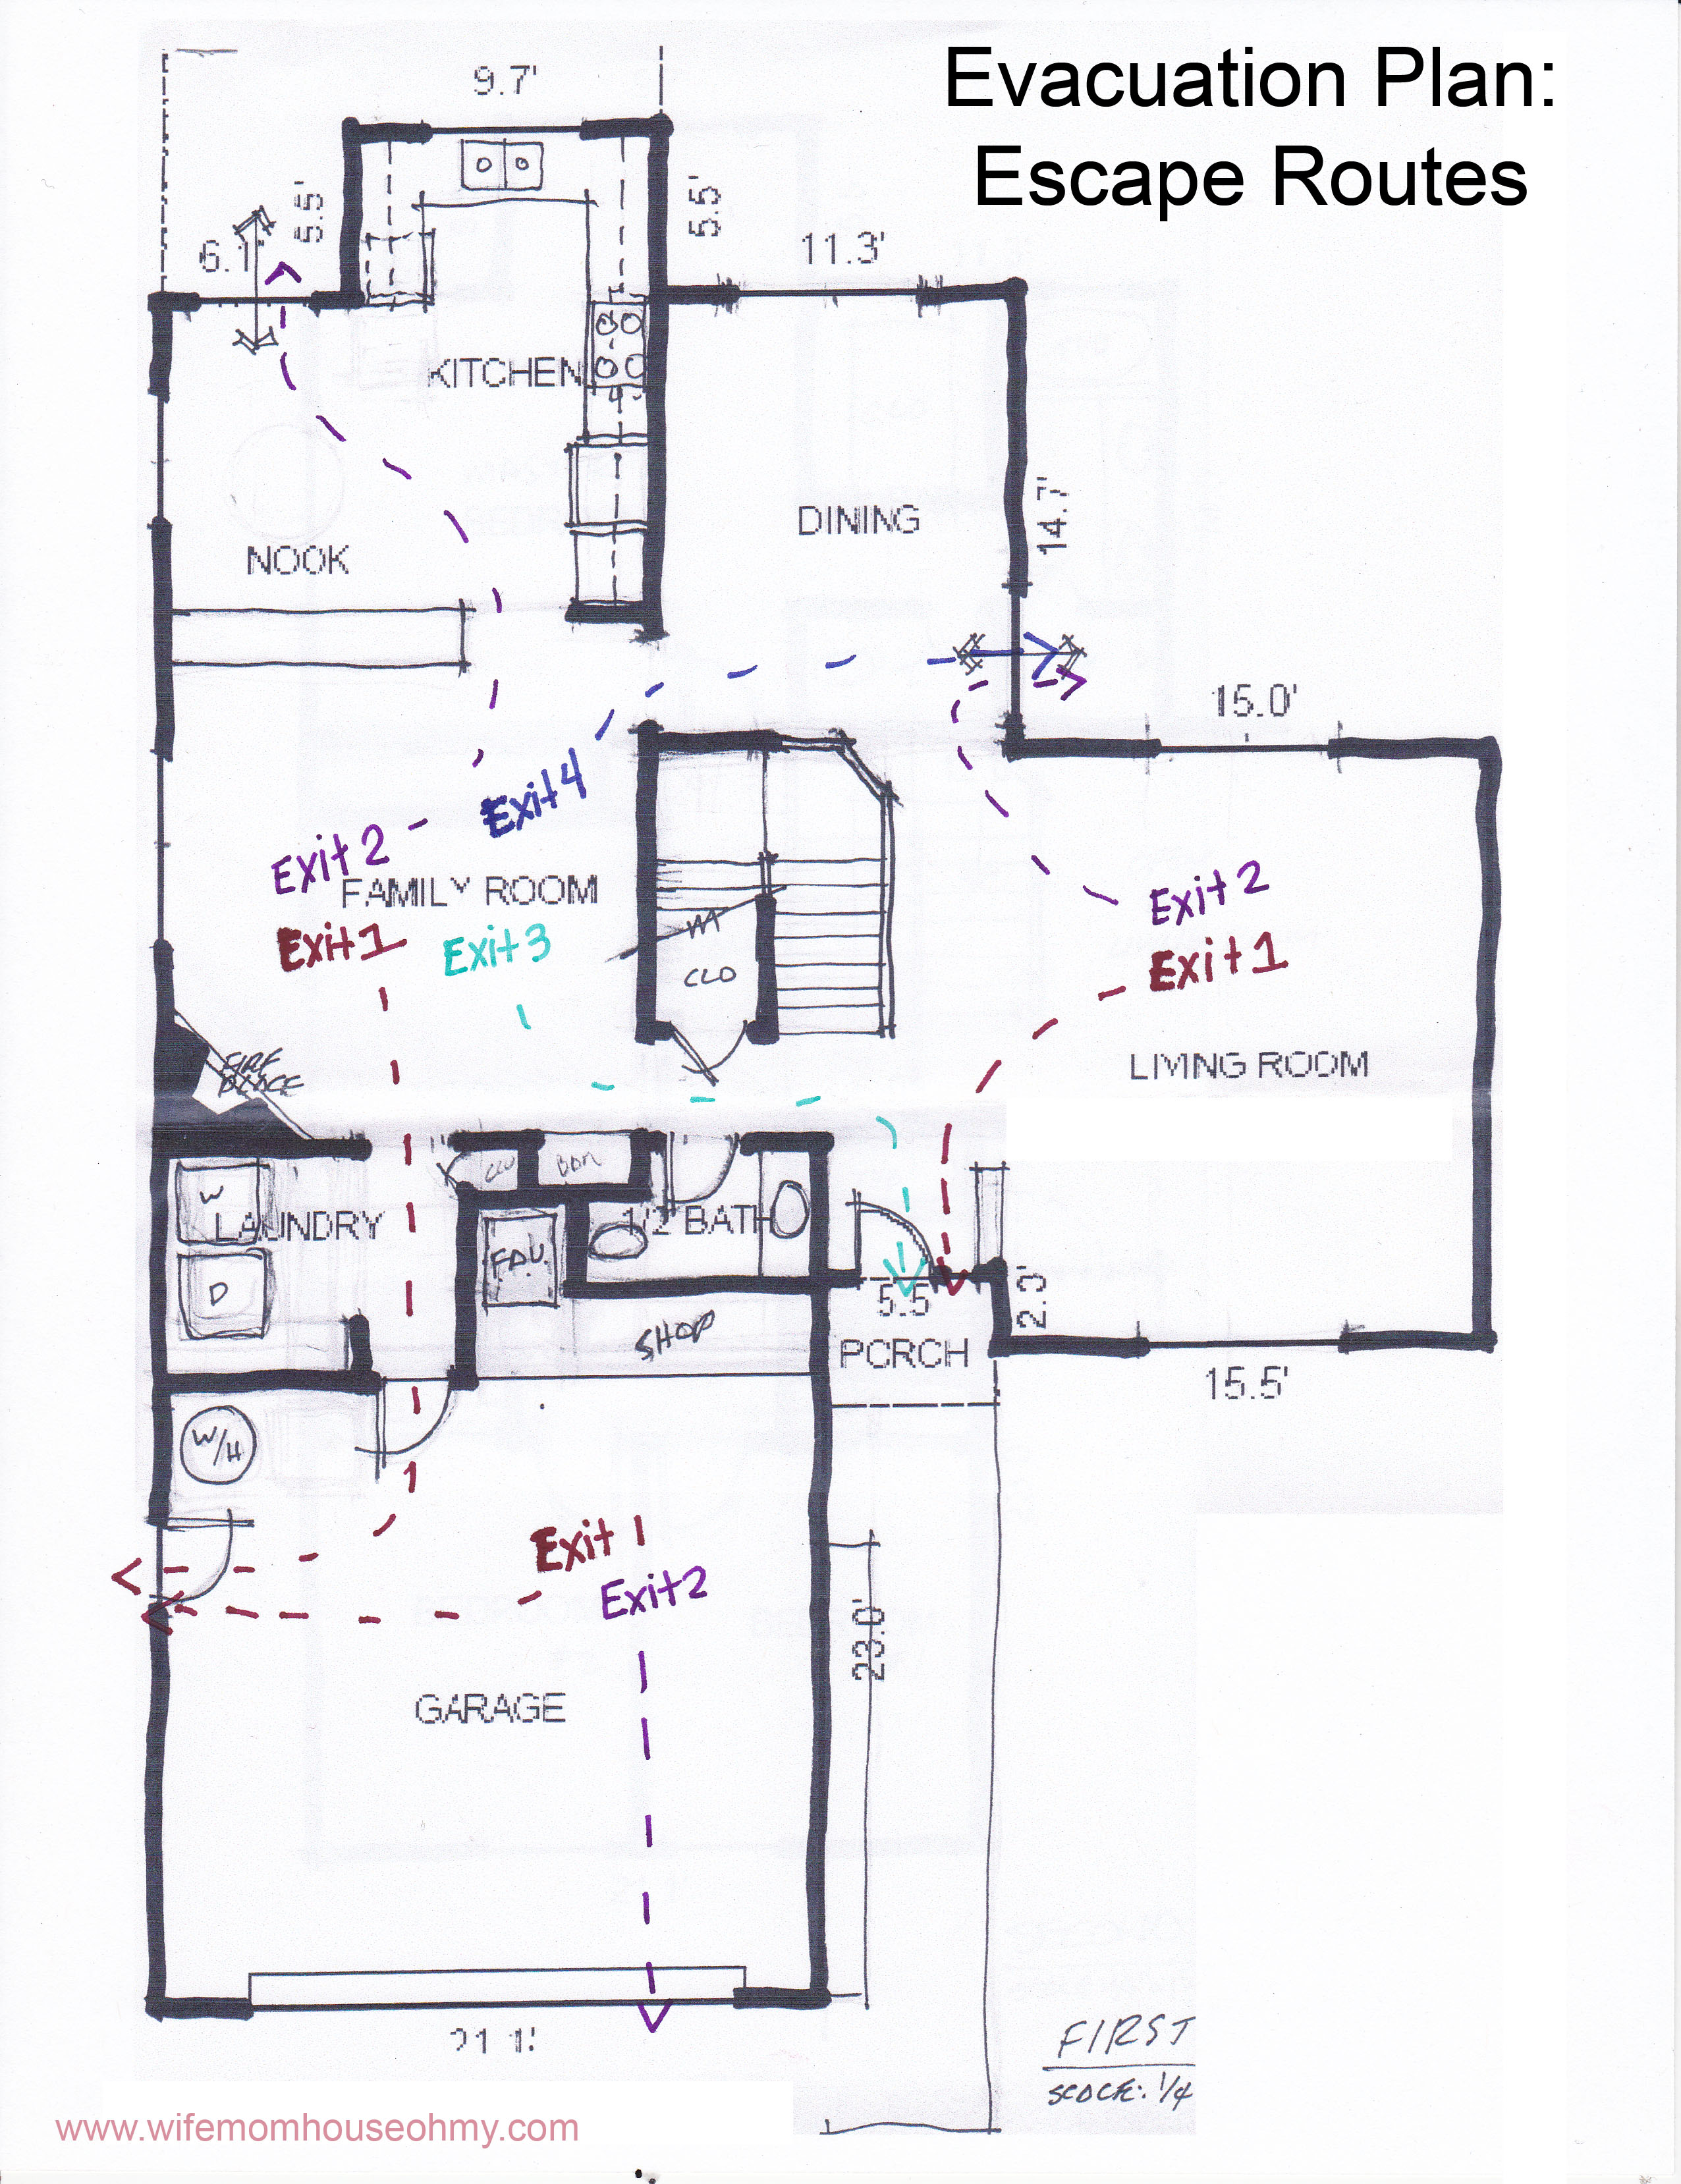 Examples of Evacuation Plan Escape Routes www.wifemomhouseohmy.com